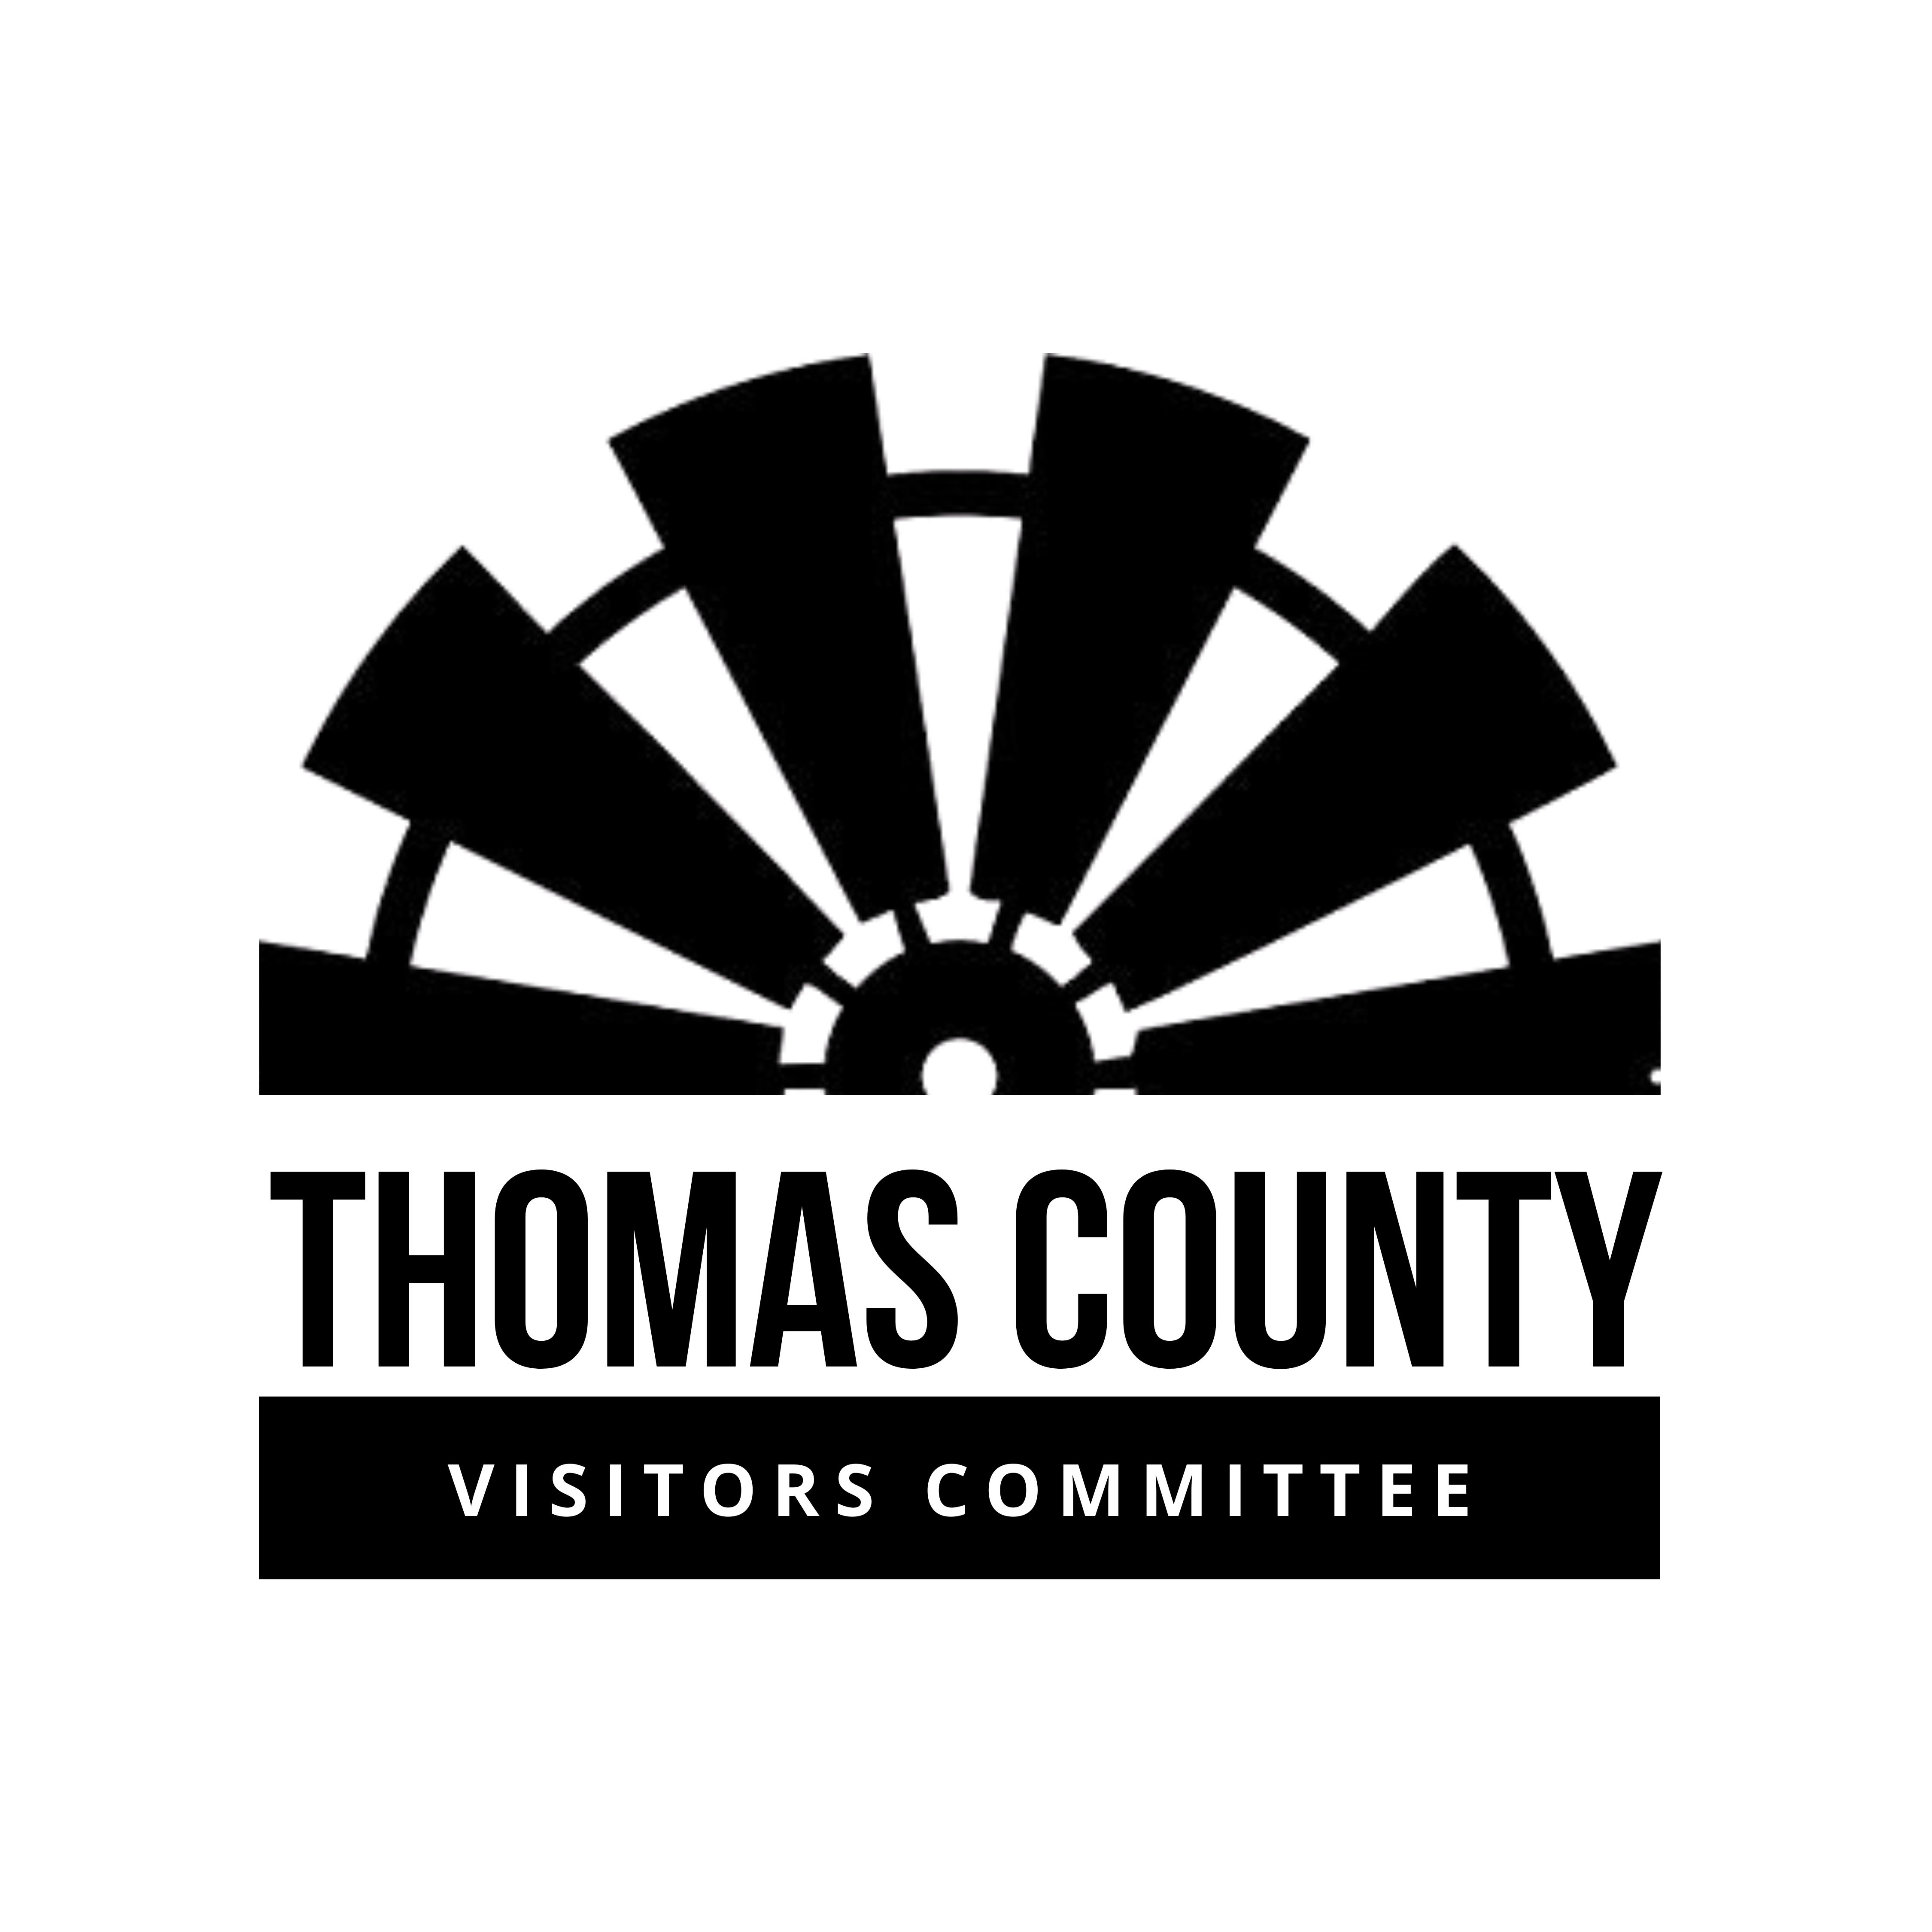 Thomas County Visitors Committee